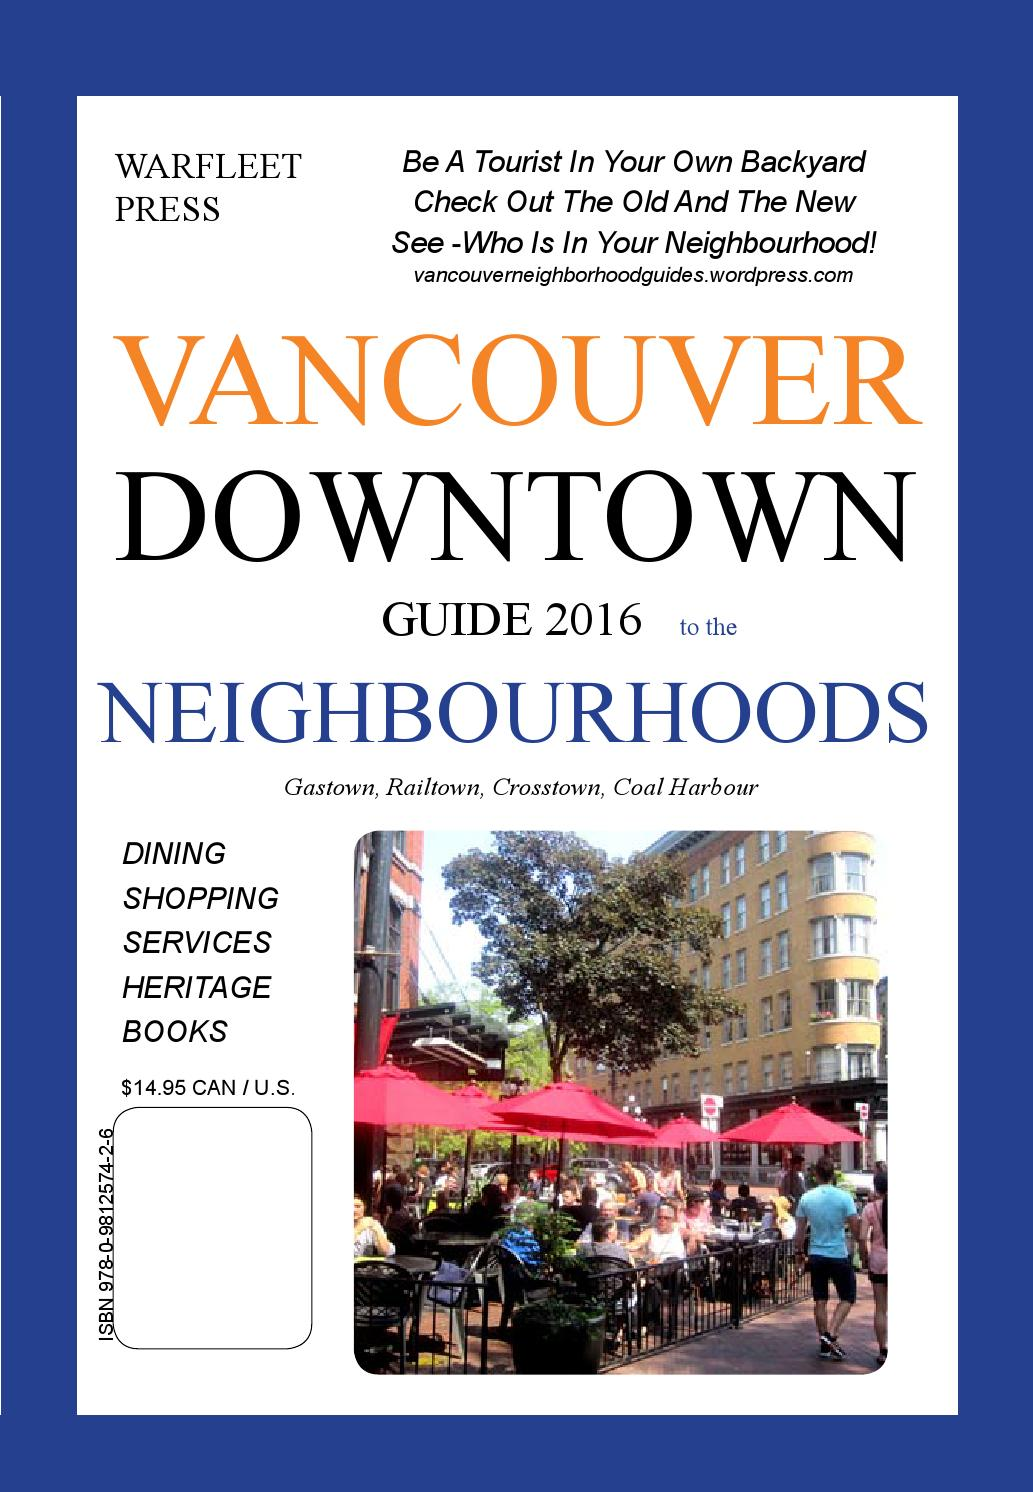 Vancouver Downtown Guide 1-2016 by Vancouver Neighborhood Guides - issuu